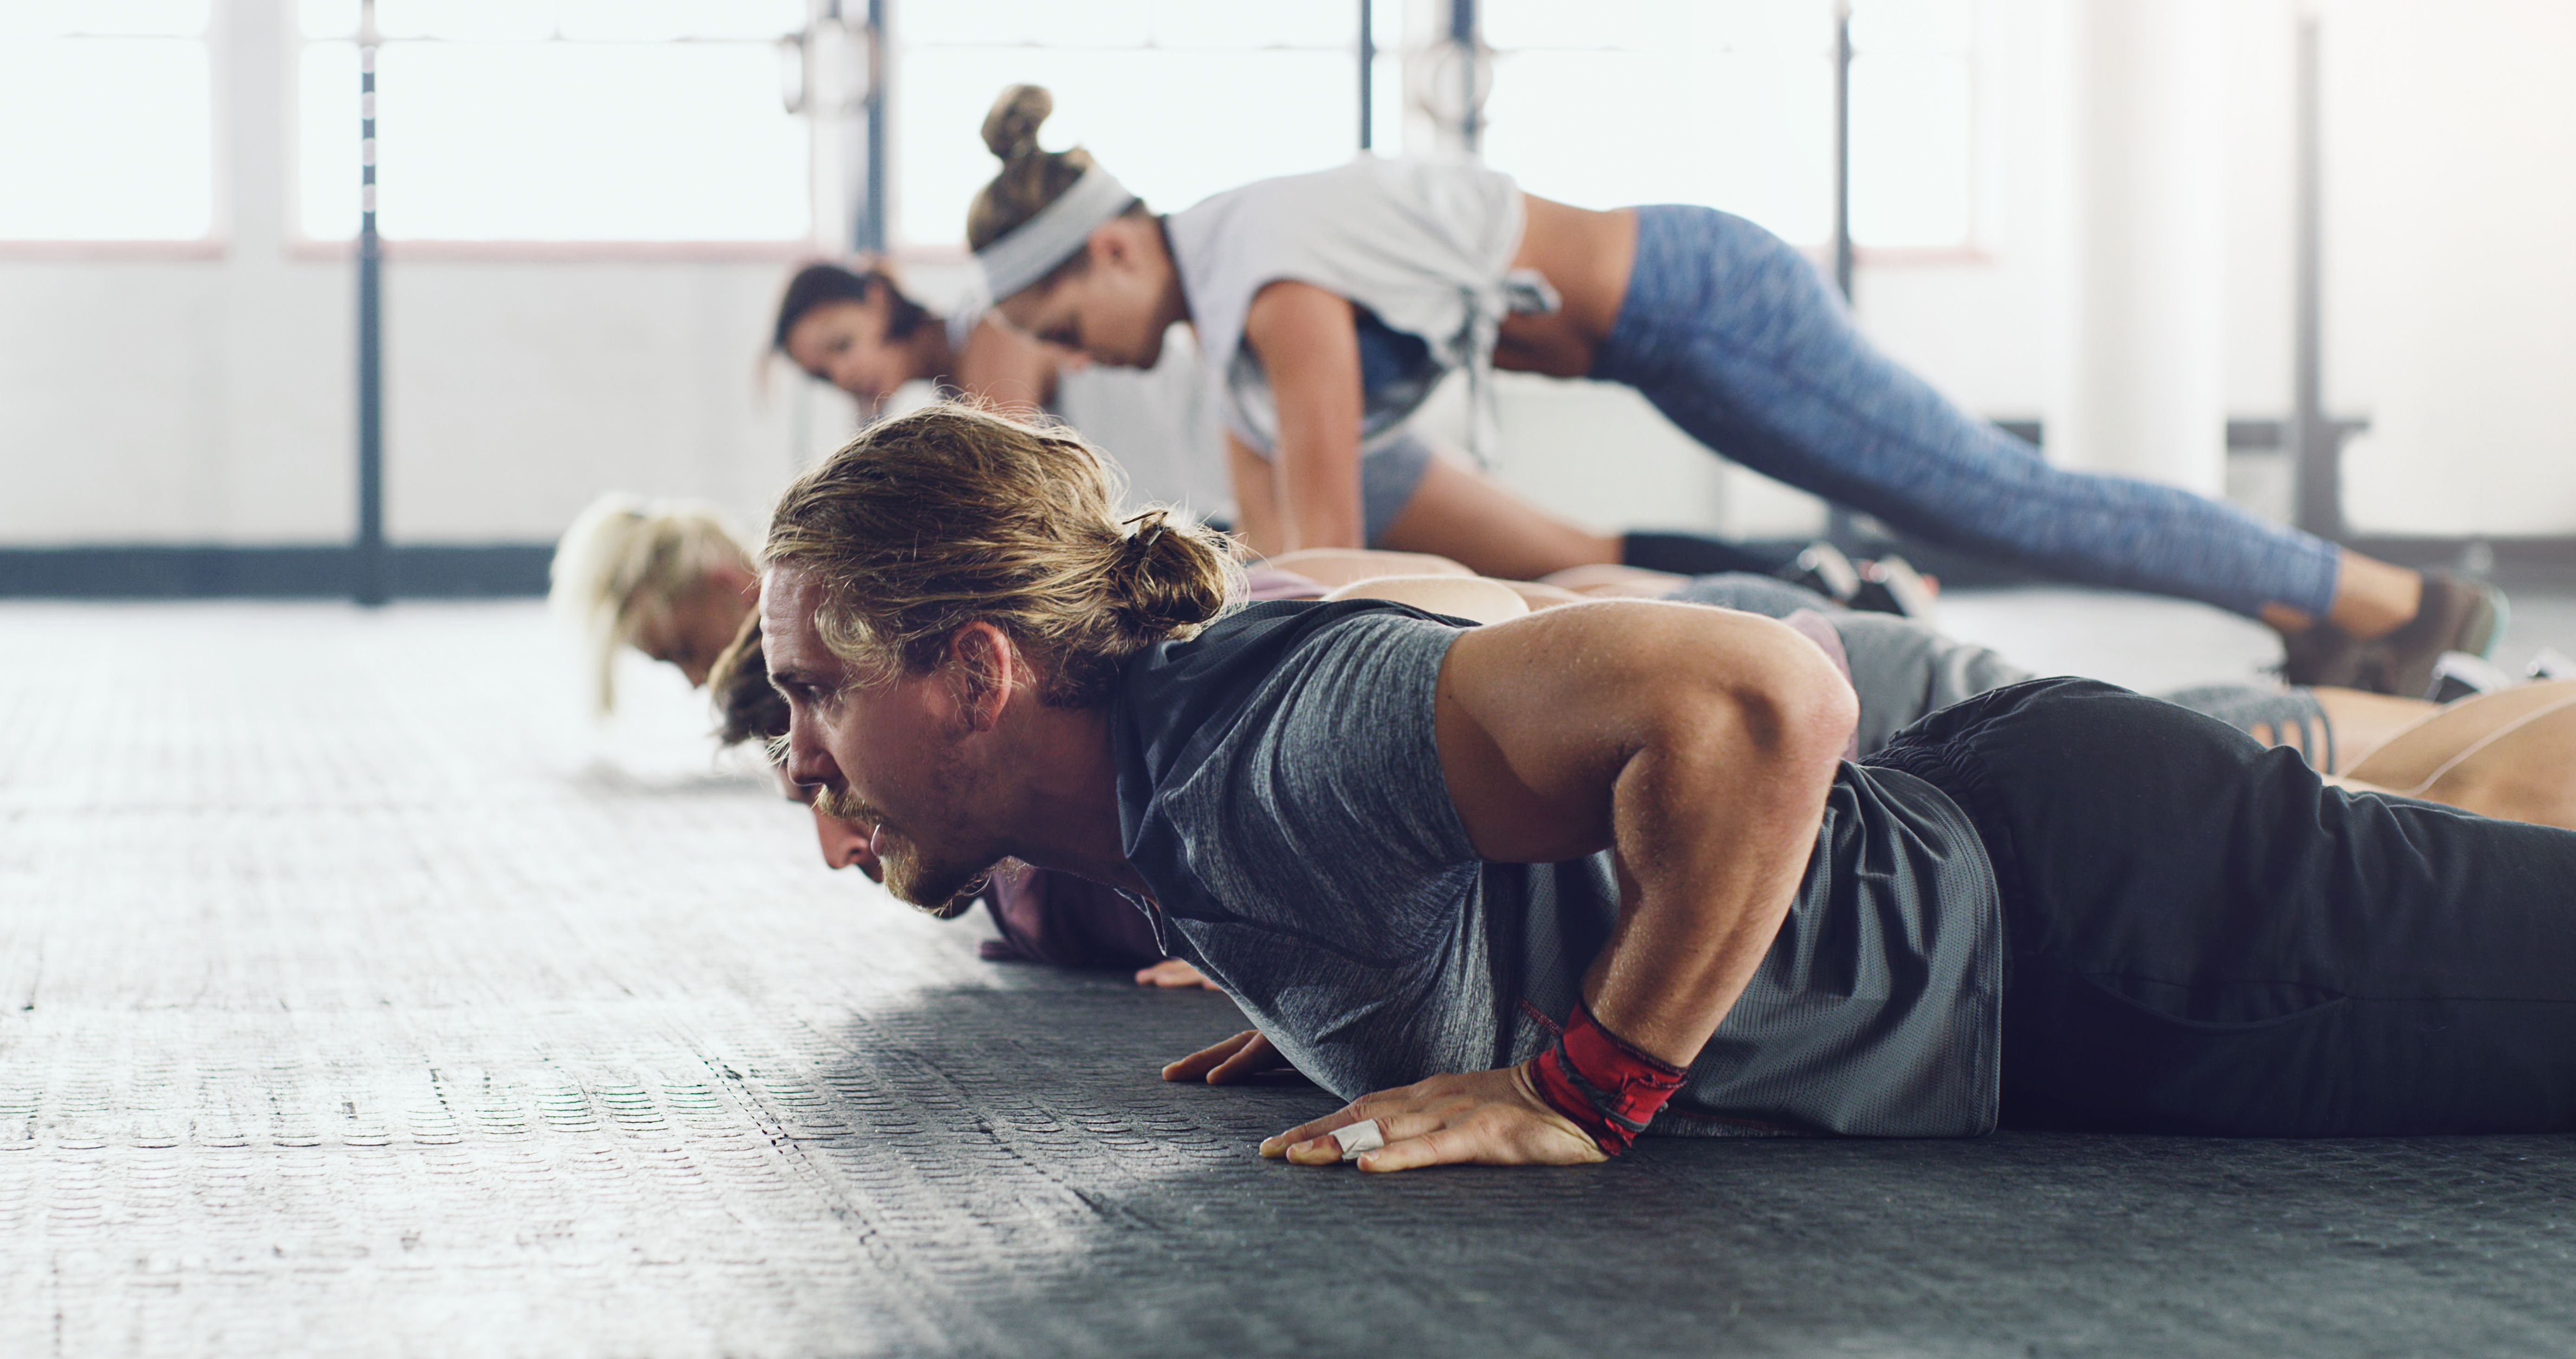 How to Do a Burpee the Right Way